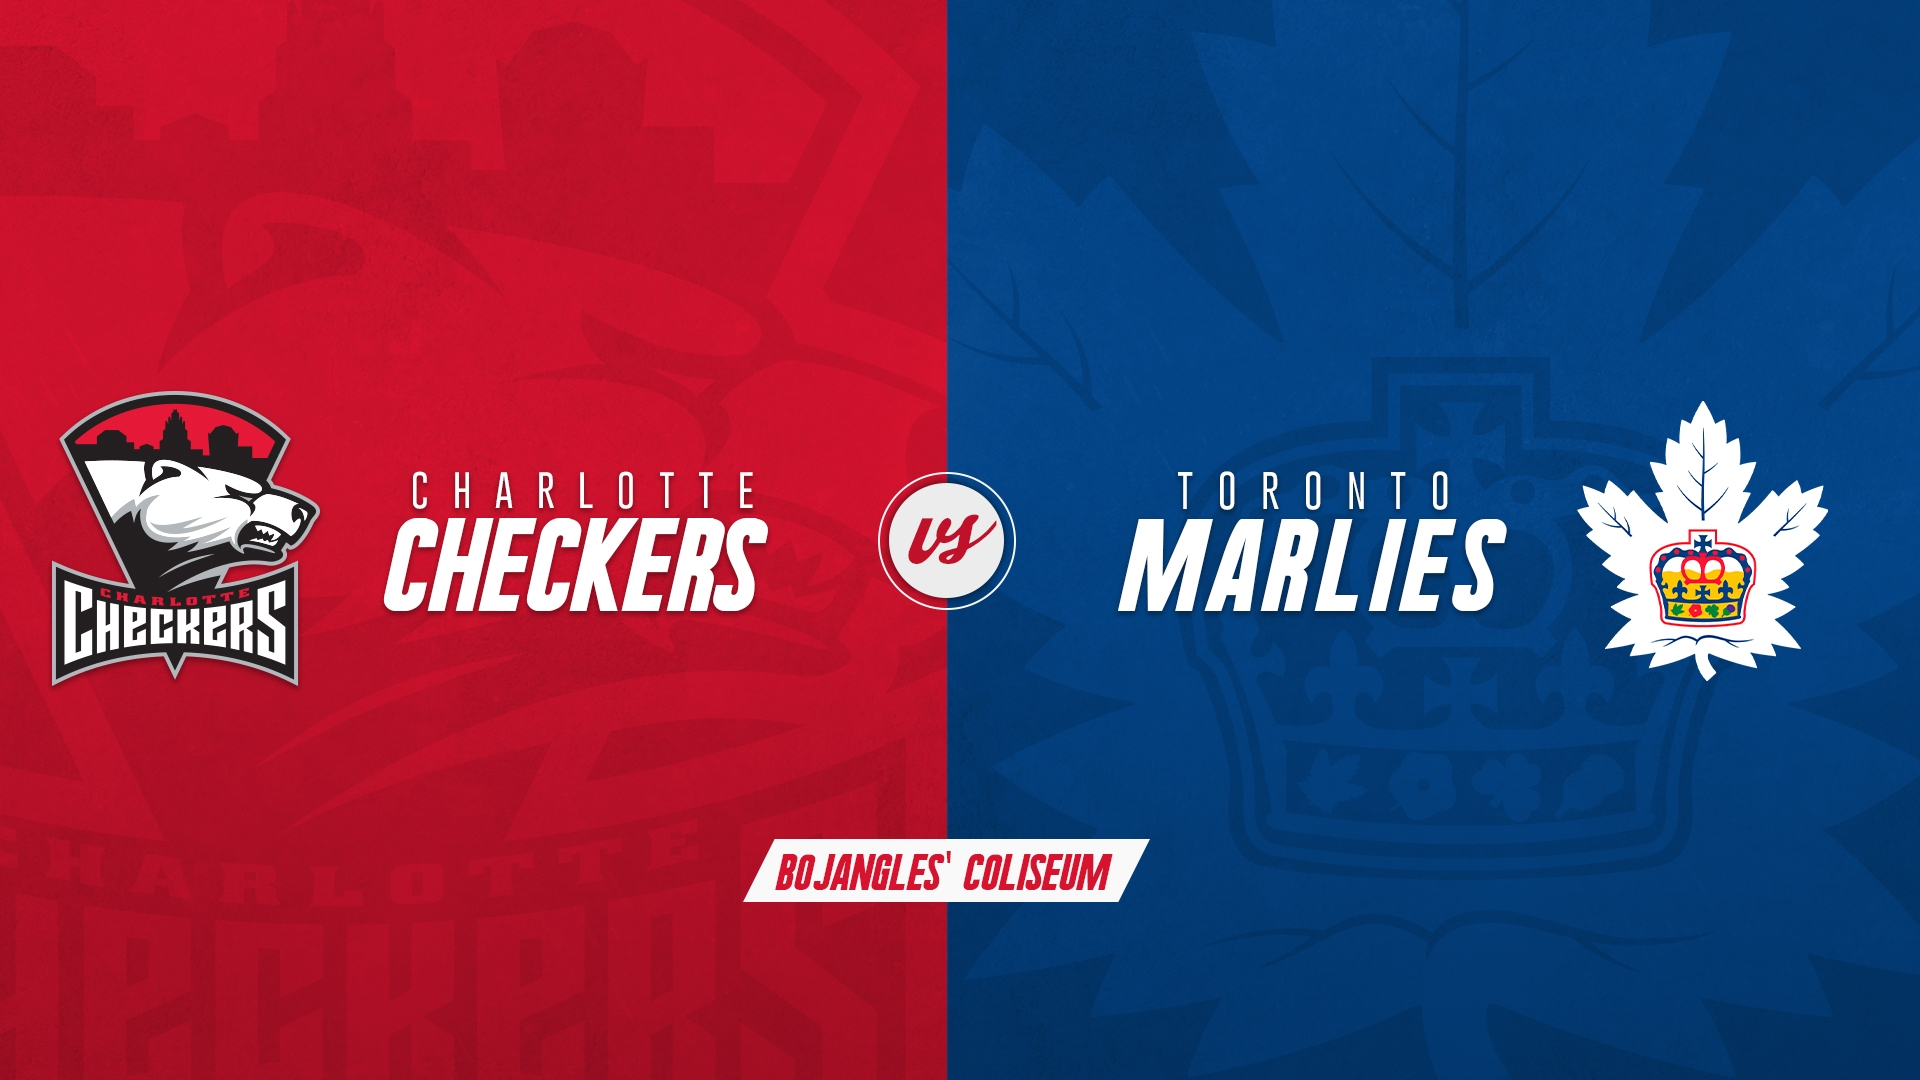 Charlotte Checkers vs. Toronto Marlies